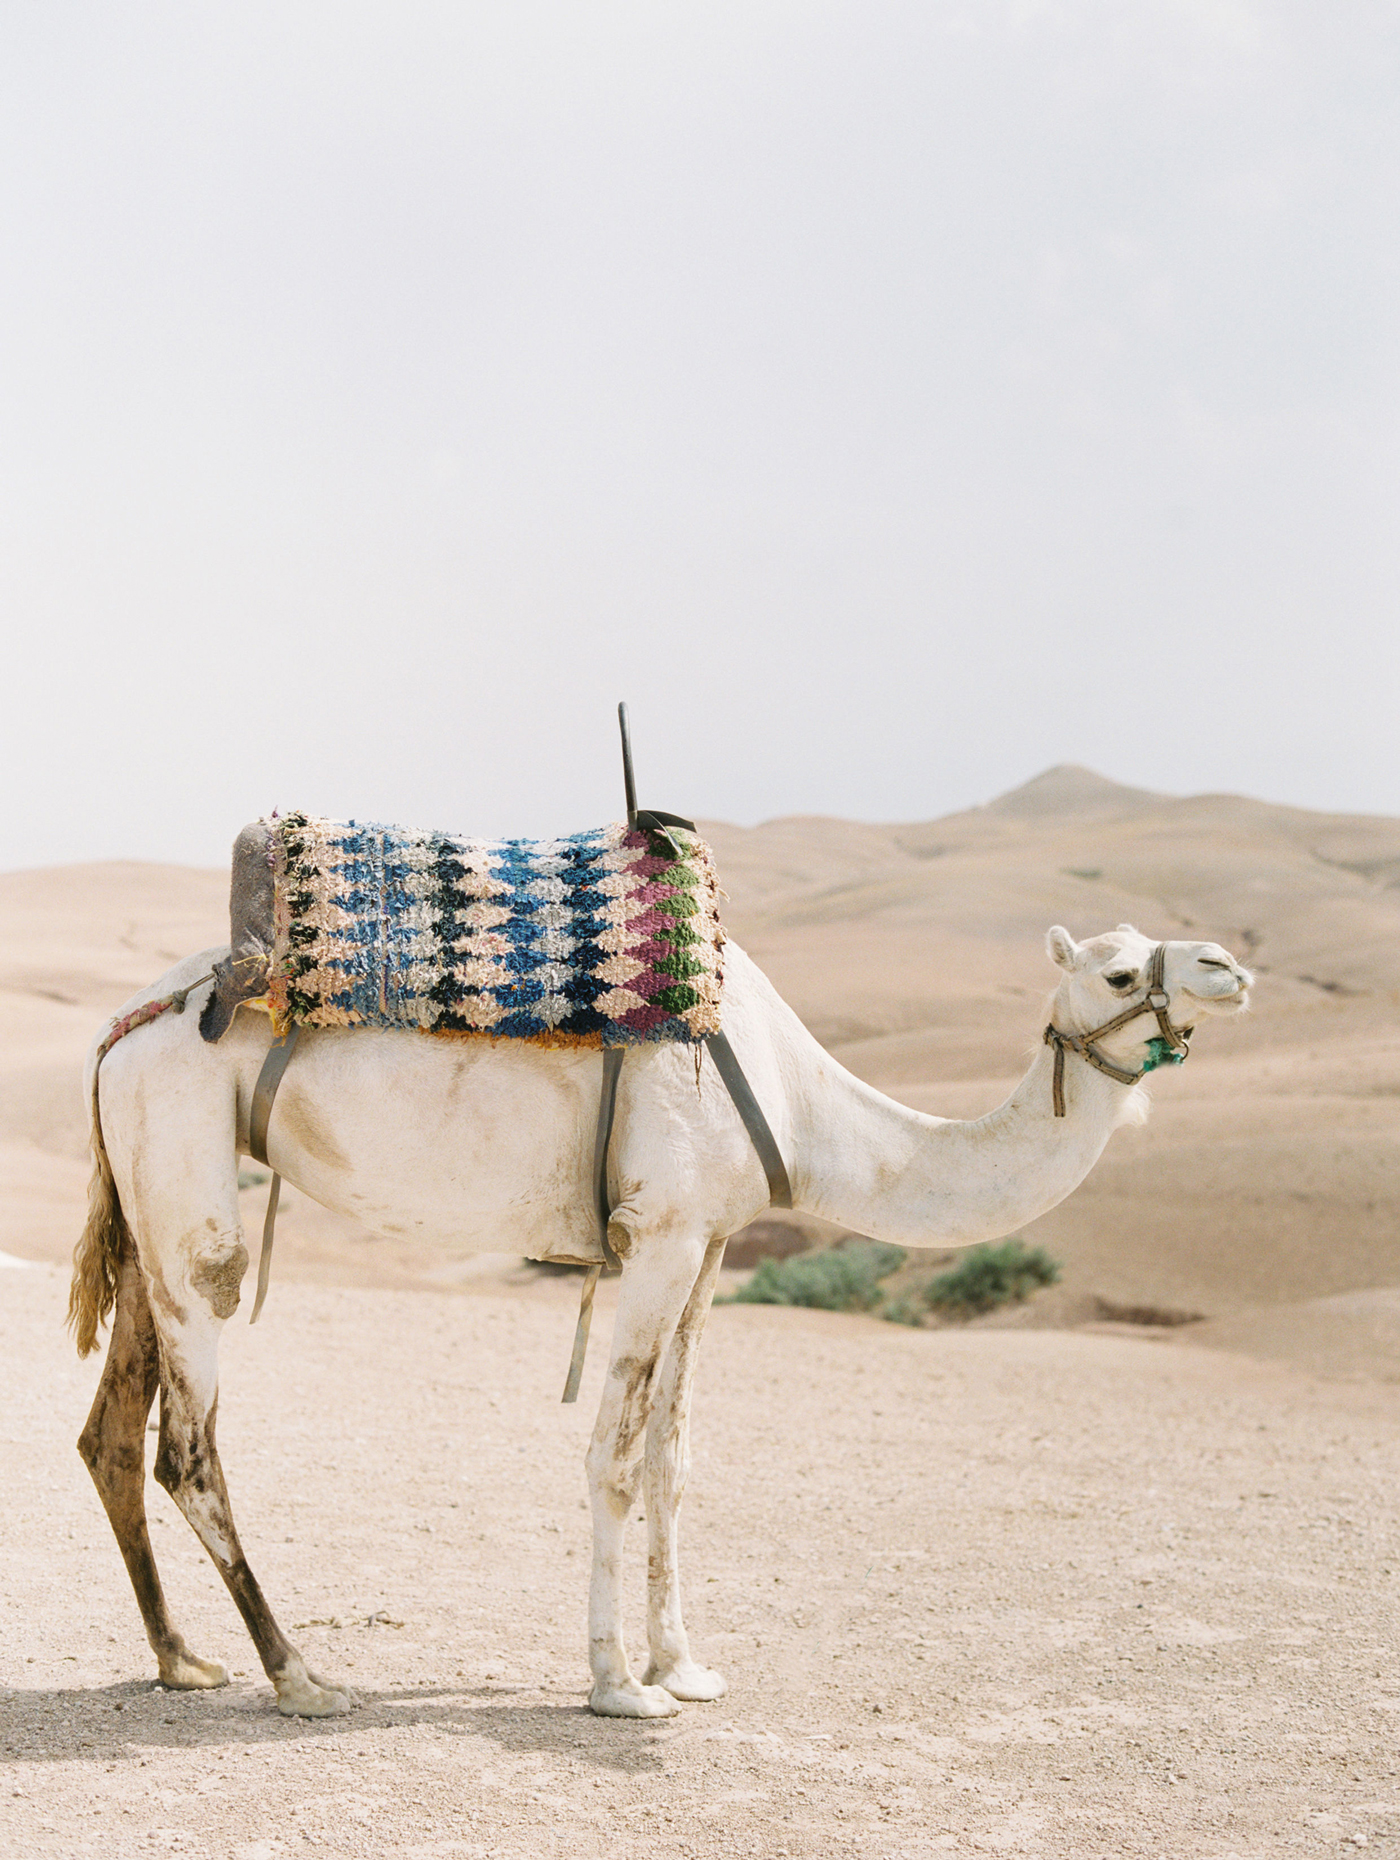 camel with patterned saddle standing in the desert